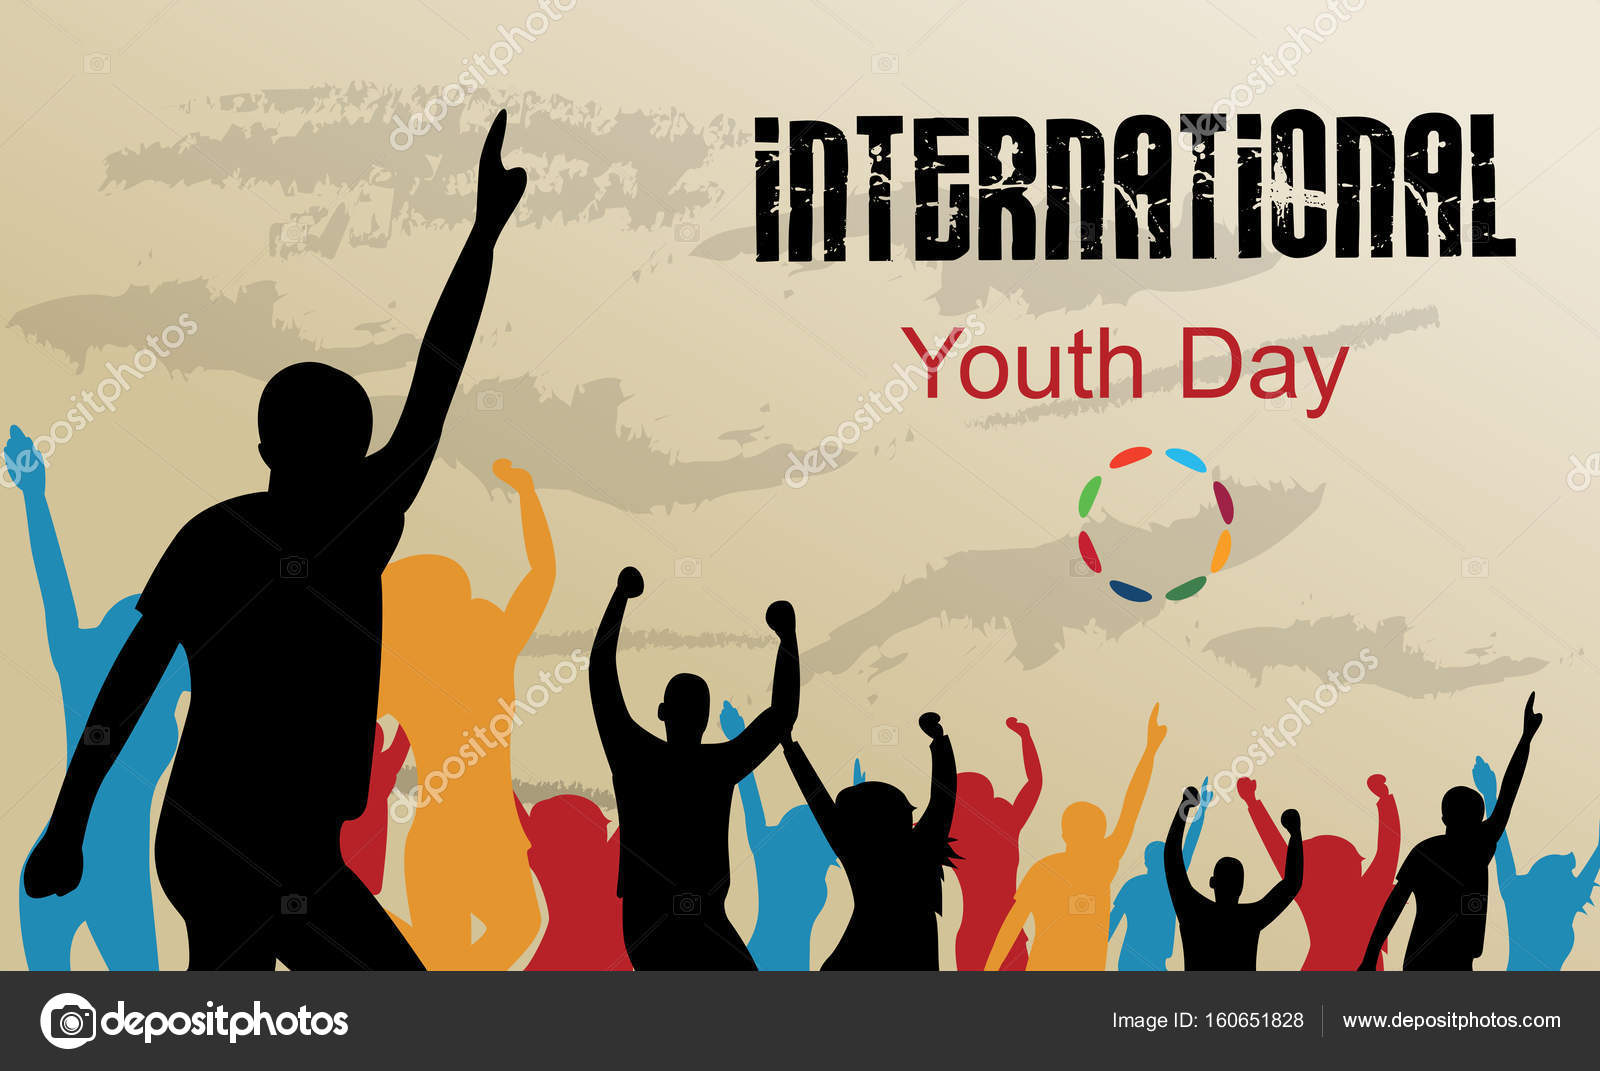 youth day Youth day in cameroon is celebrated annually on february 11 this holiday was created in 1962 after reunification of british southern cameroon and french cameroon.